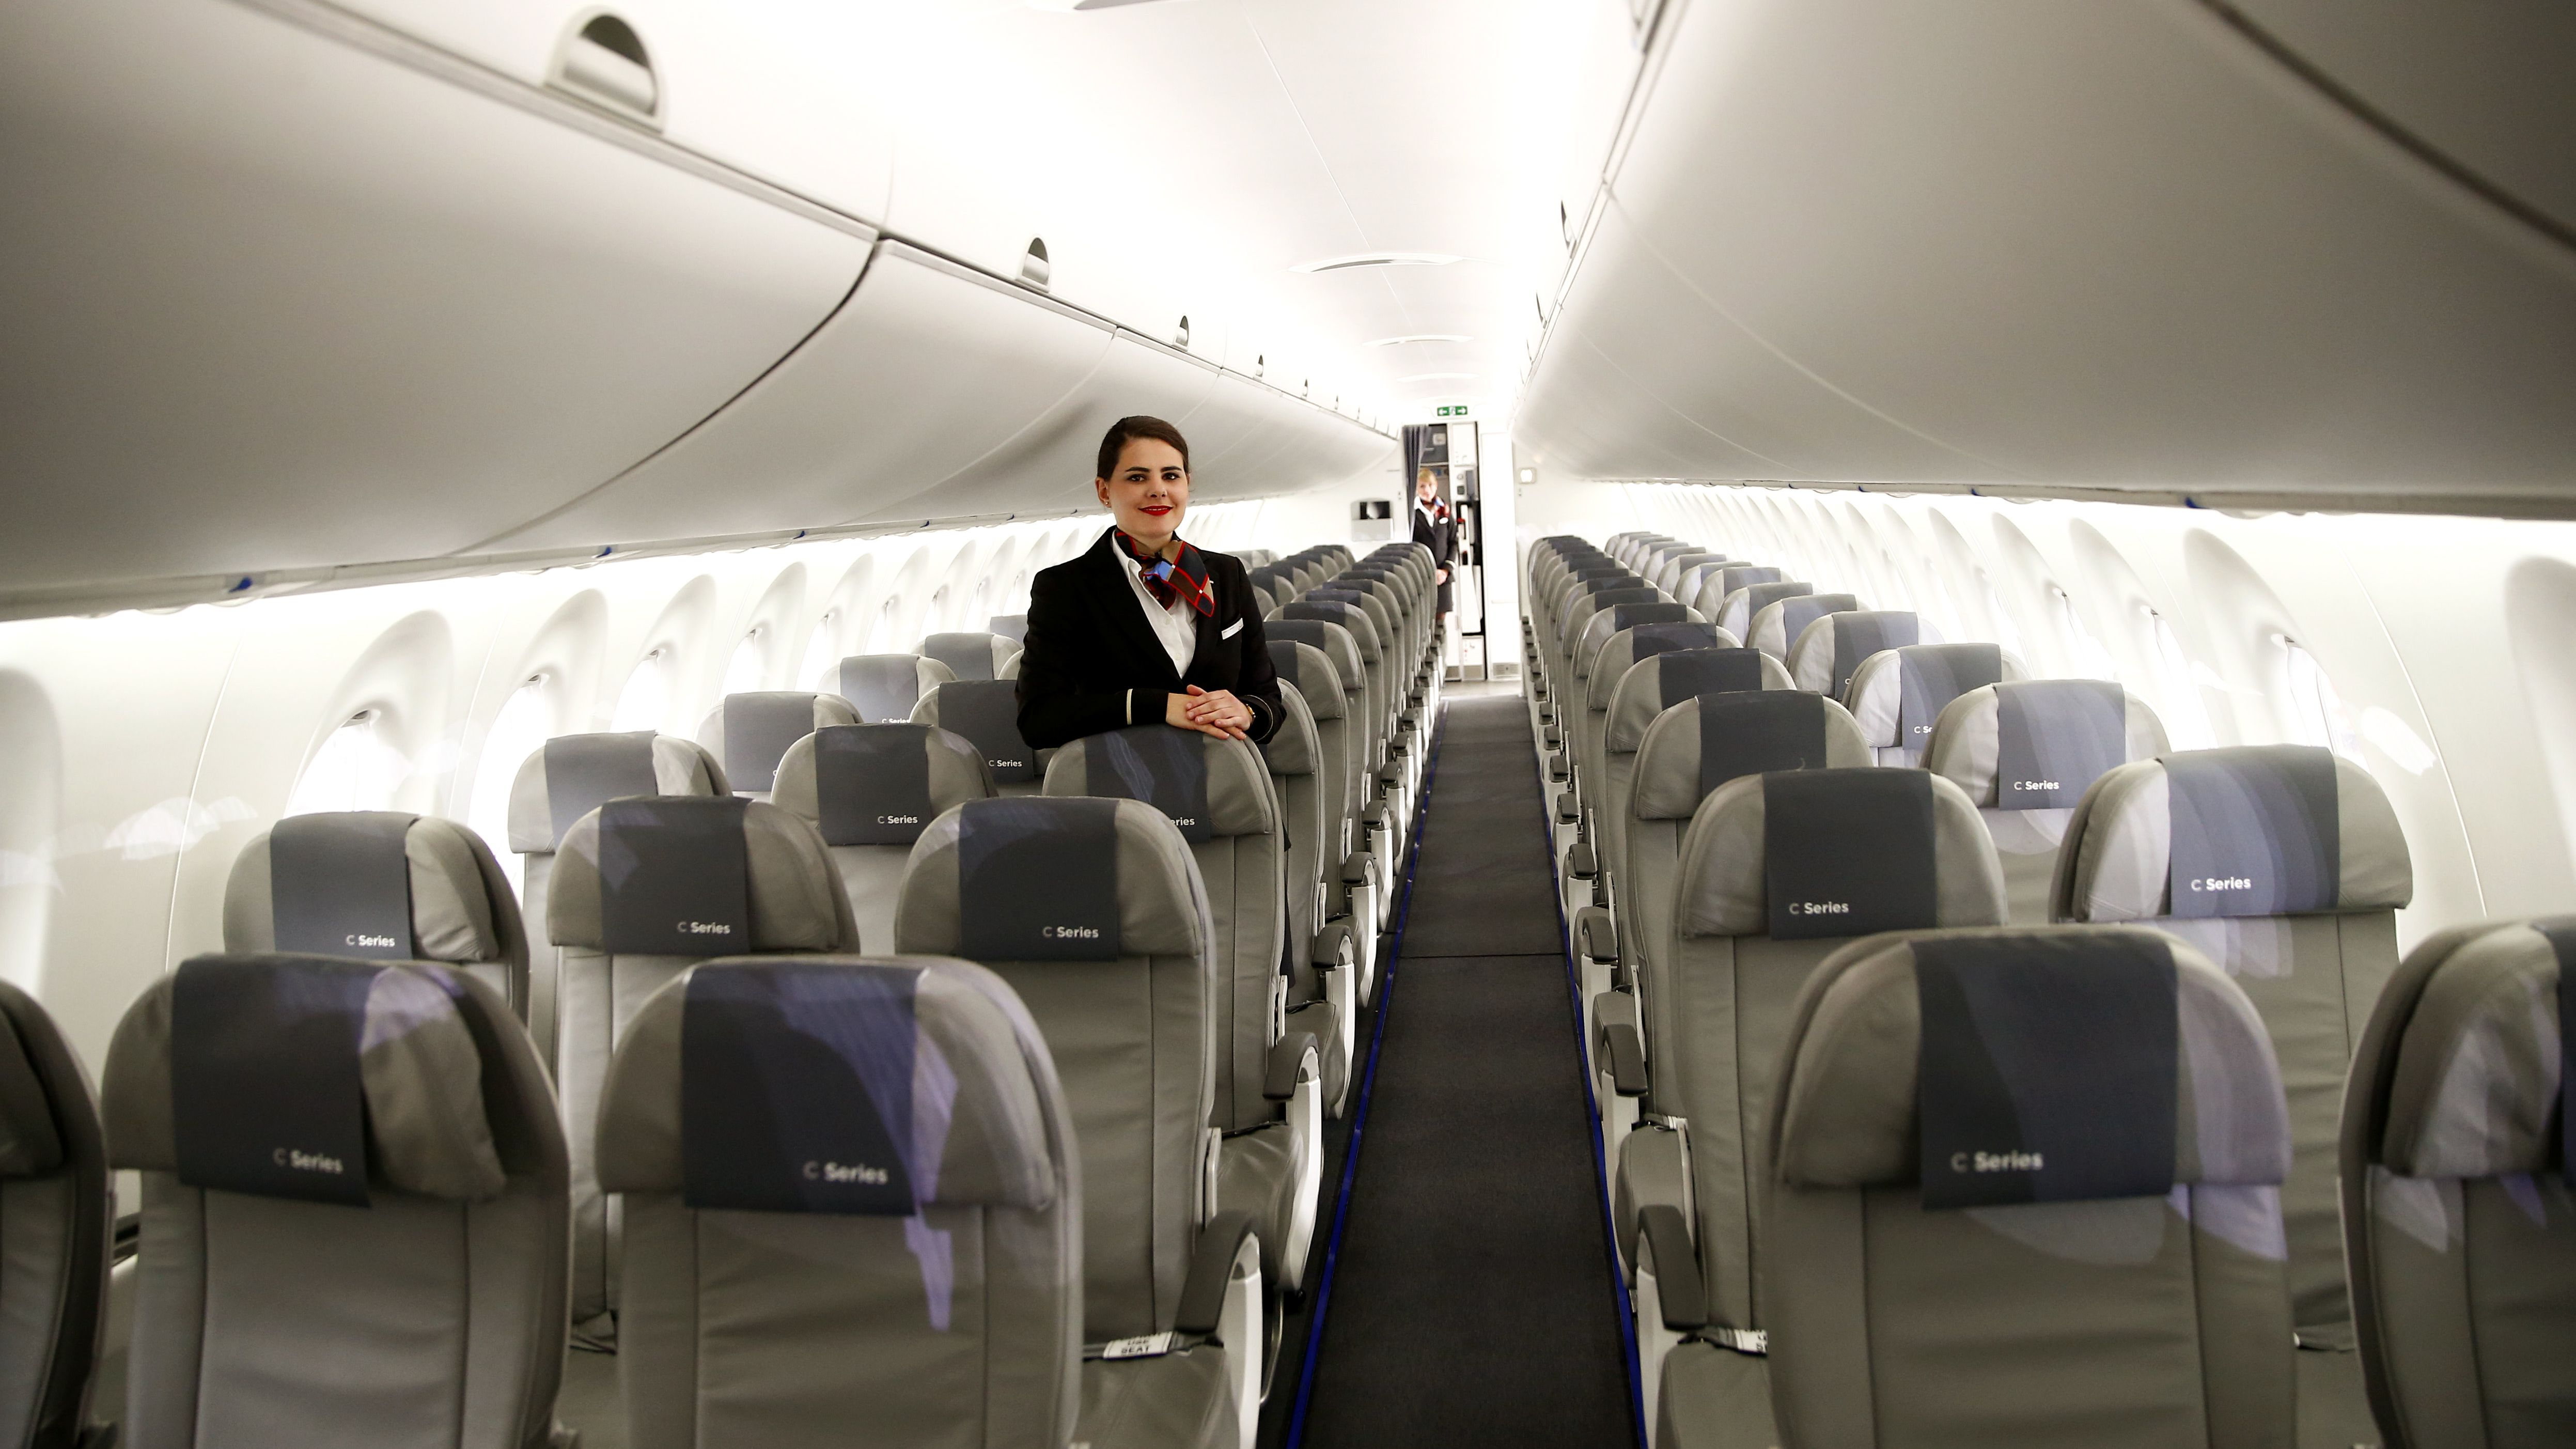 The New Onego Service Offere Unlimited Flights On Airlines